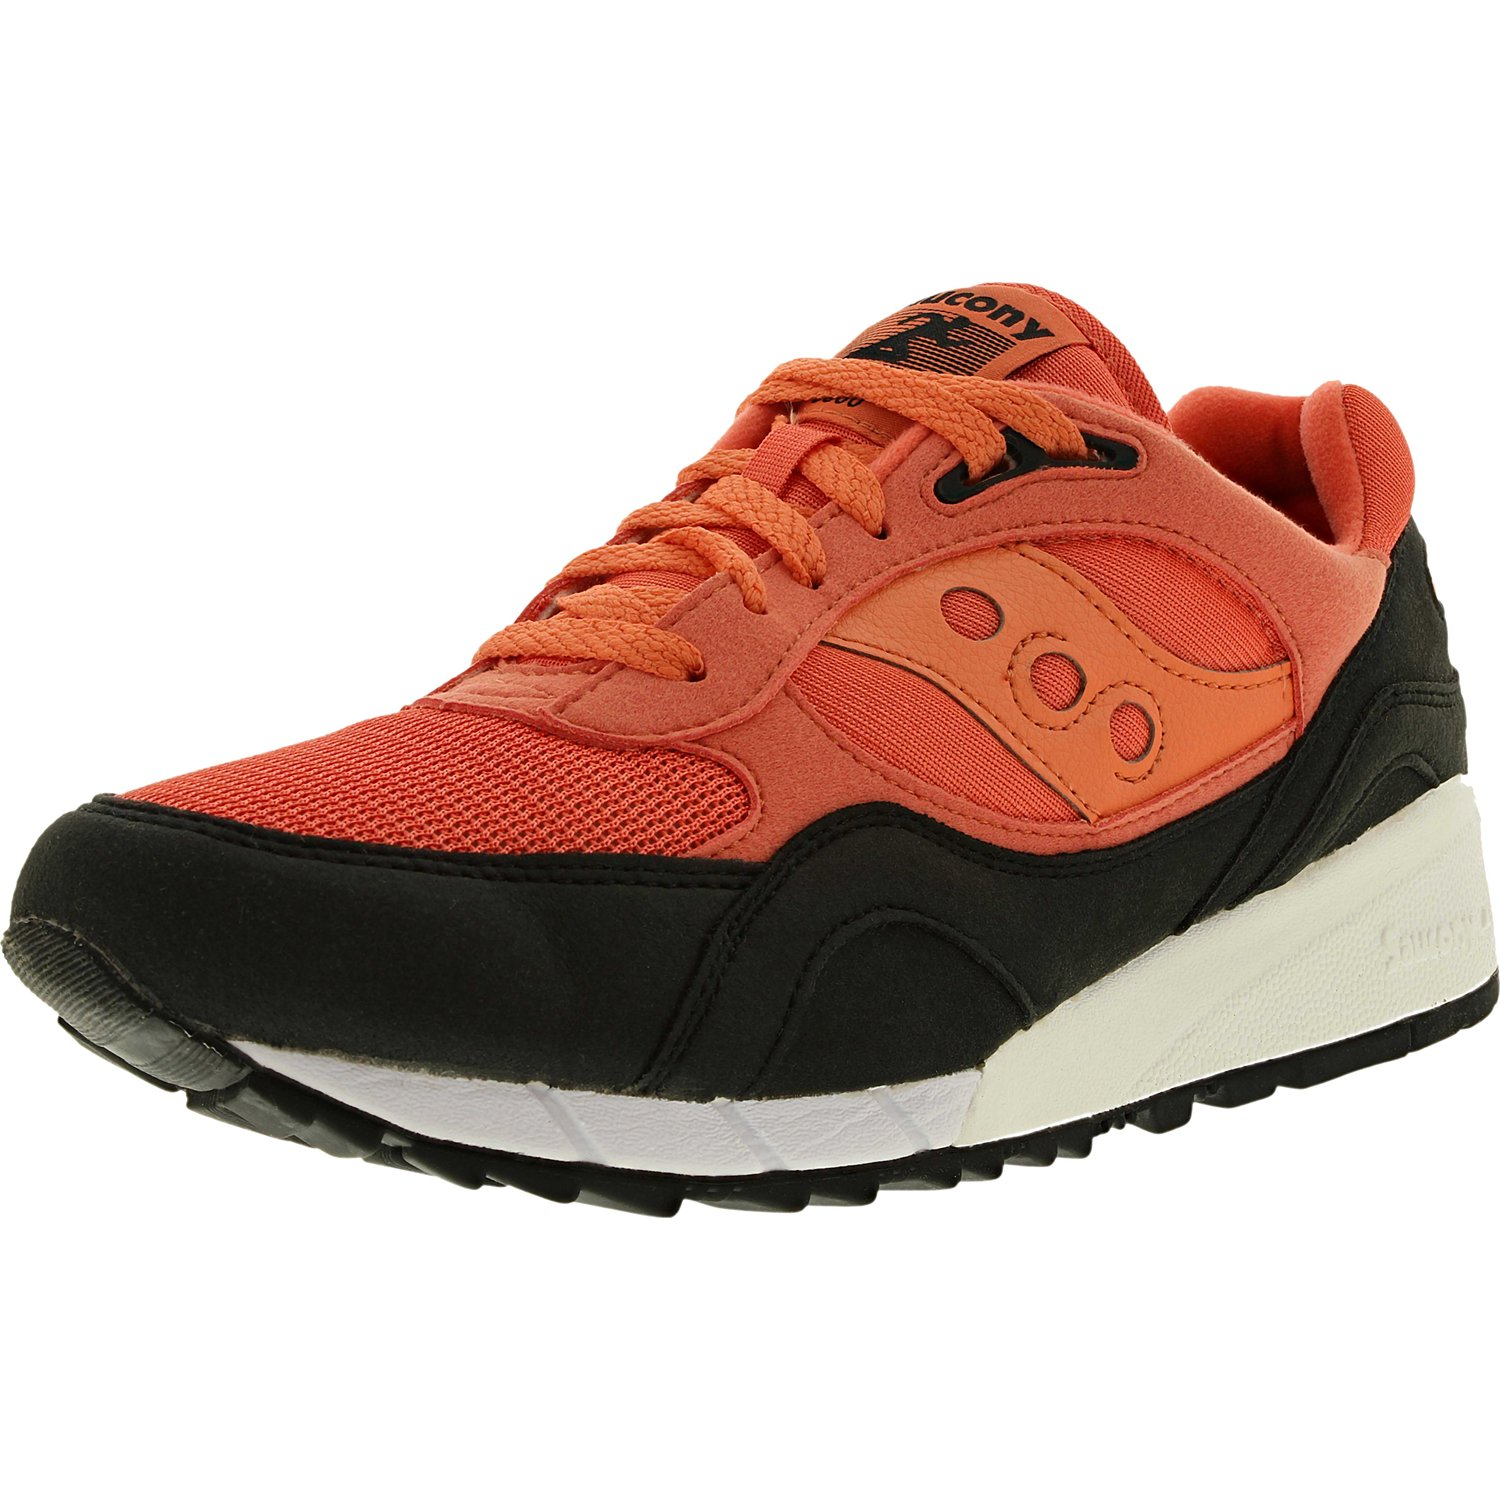 Saucony Men's Shadow 6000 Coral/Black Ankle-High Fashion ...